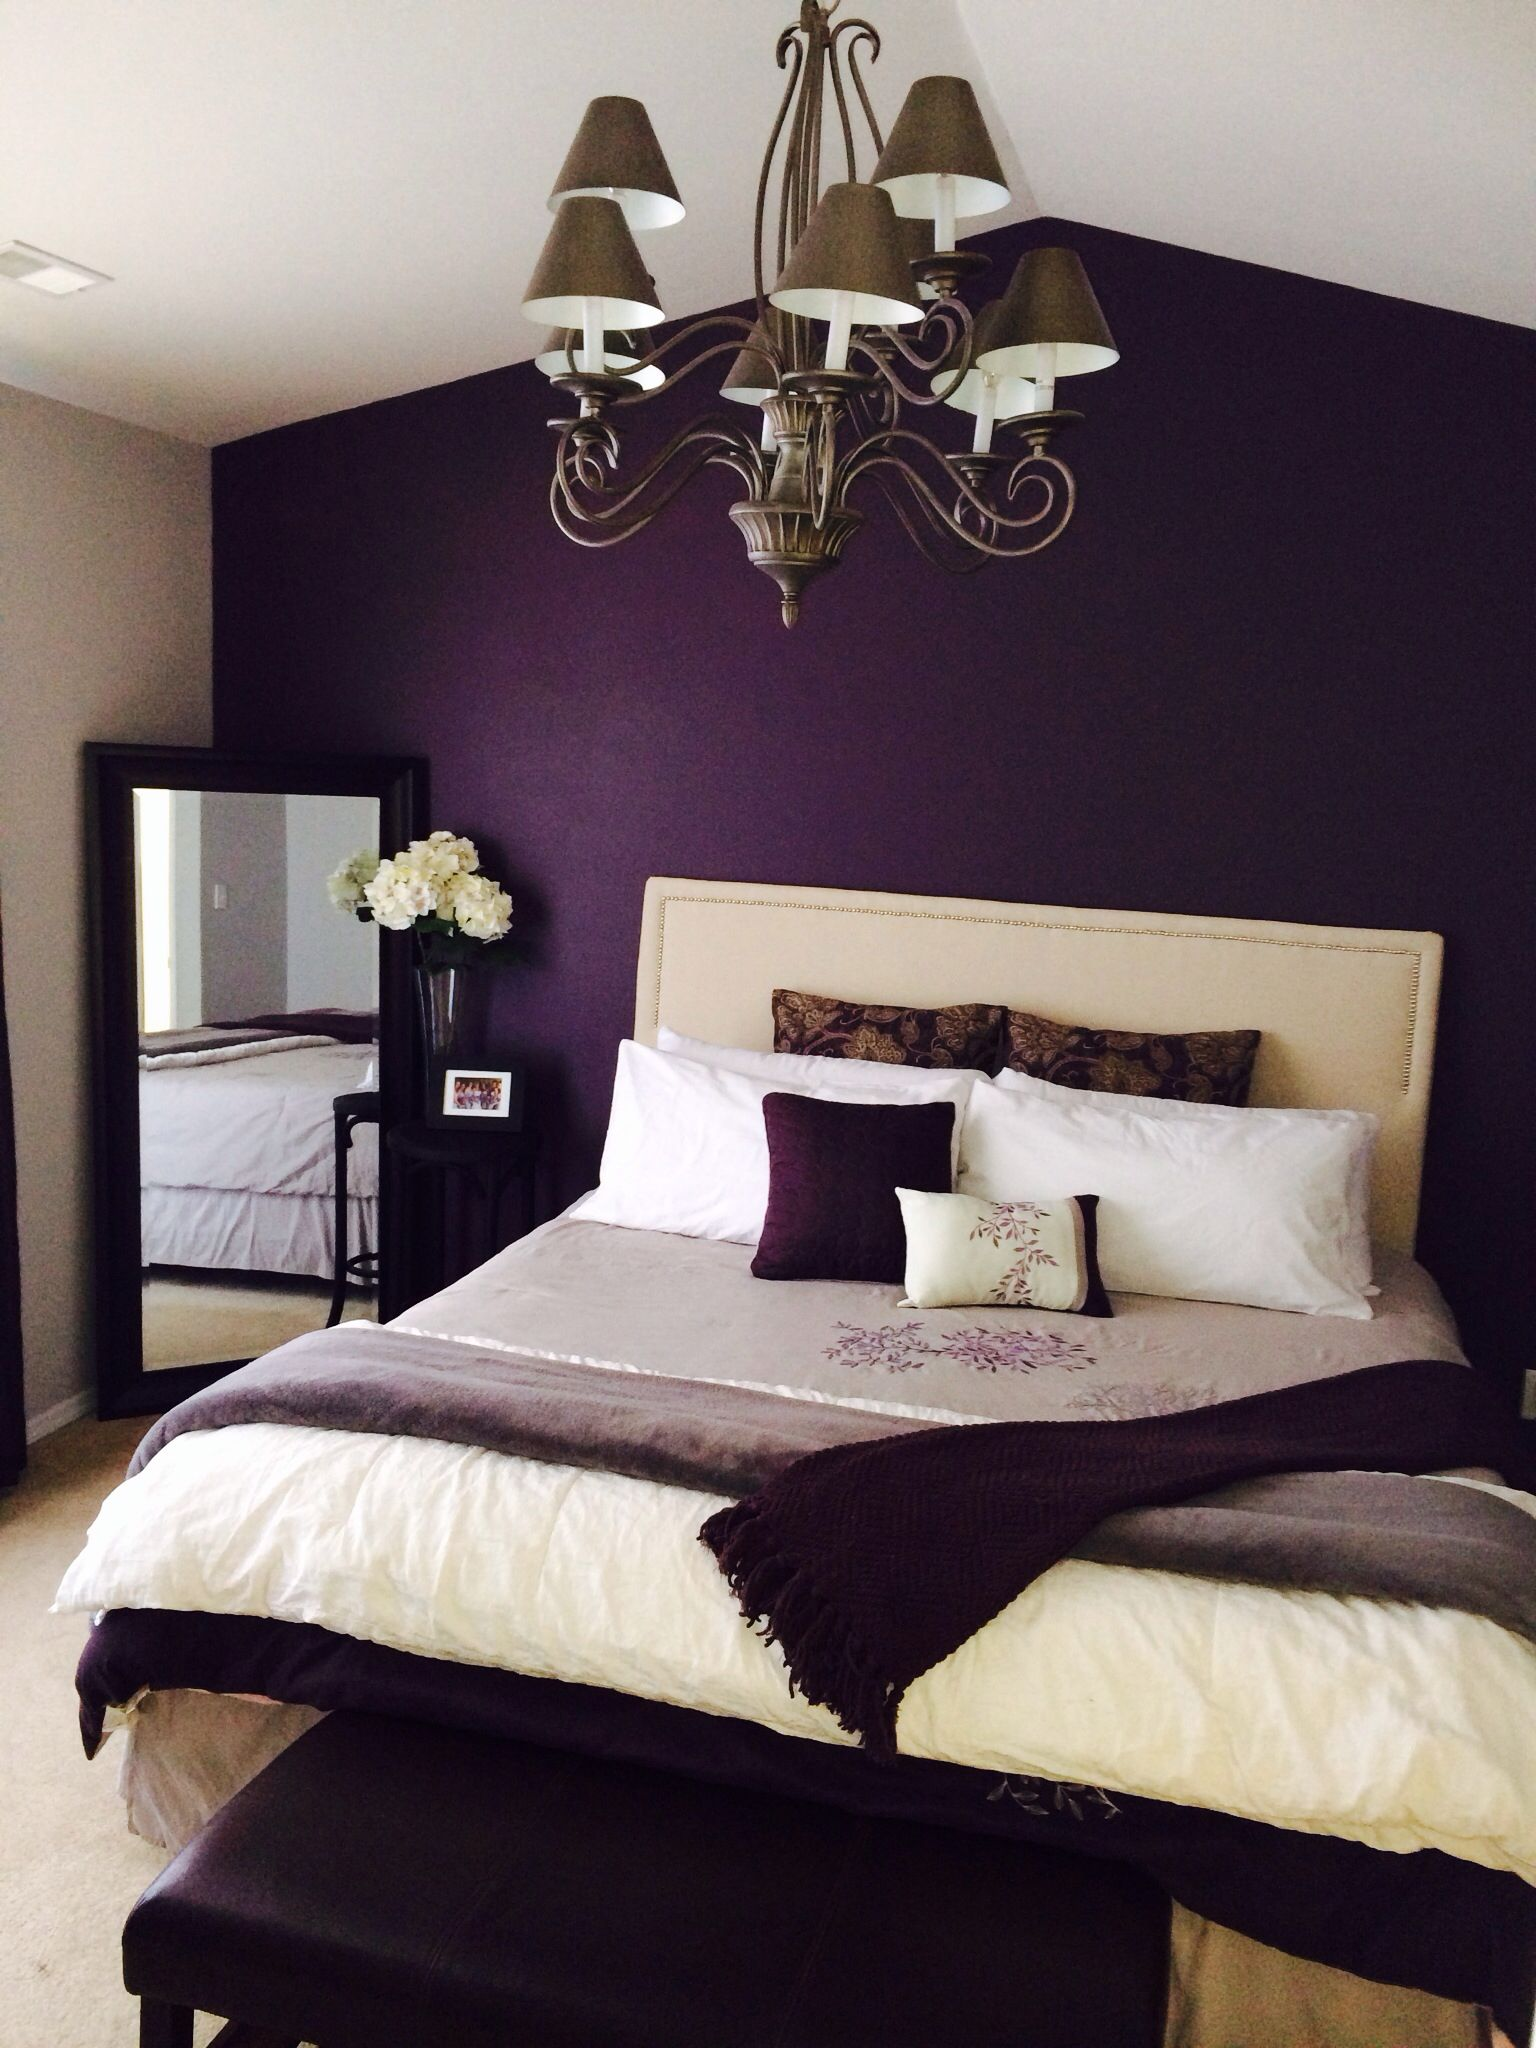 Bedroom Design Decor By Kelly Ann More